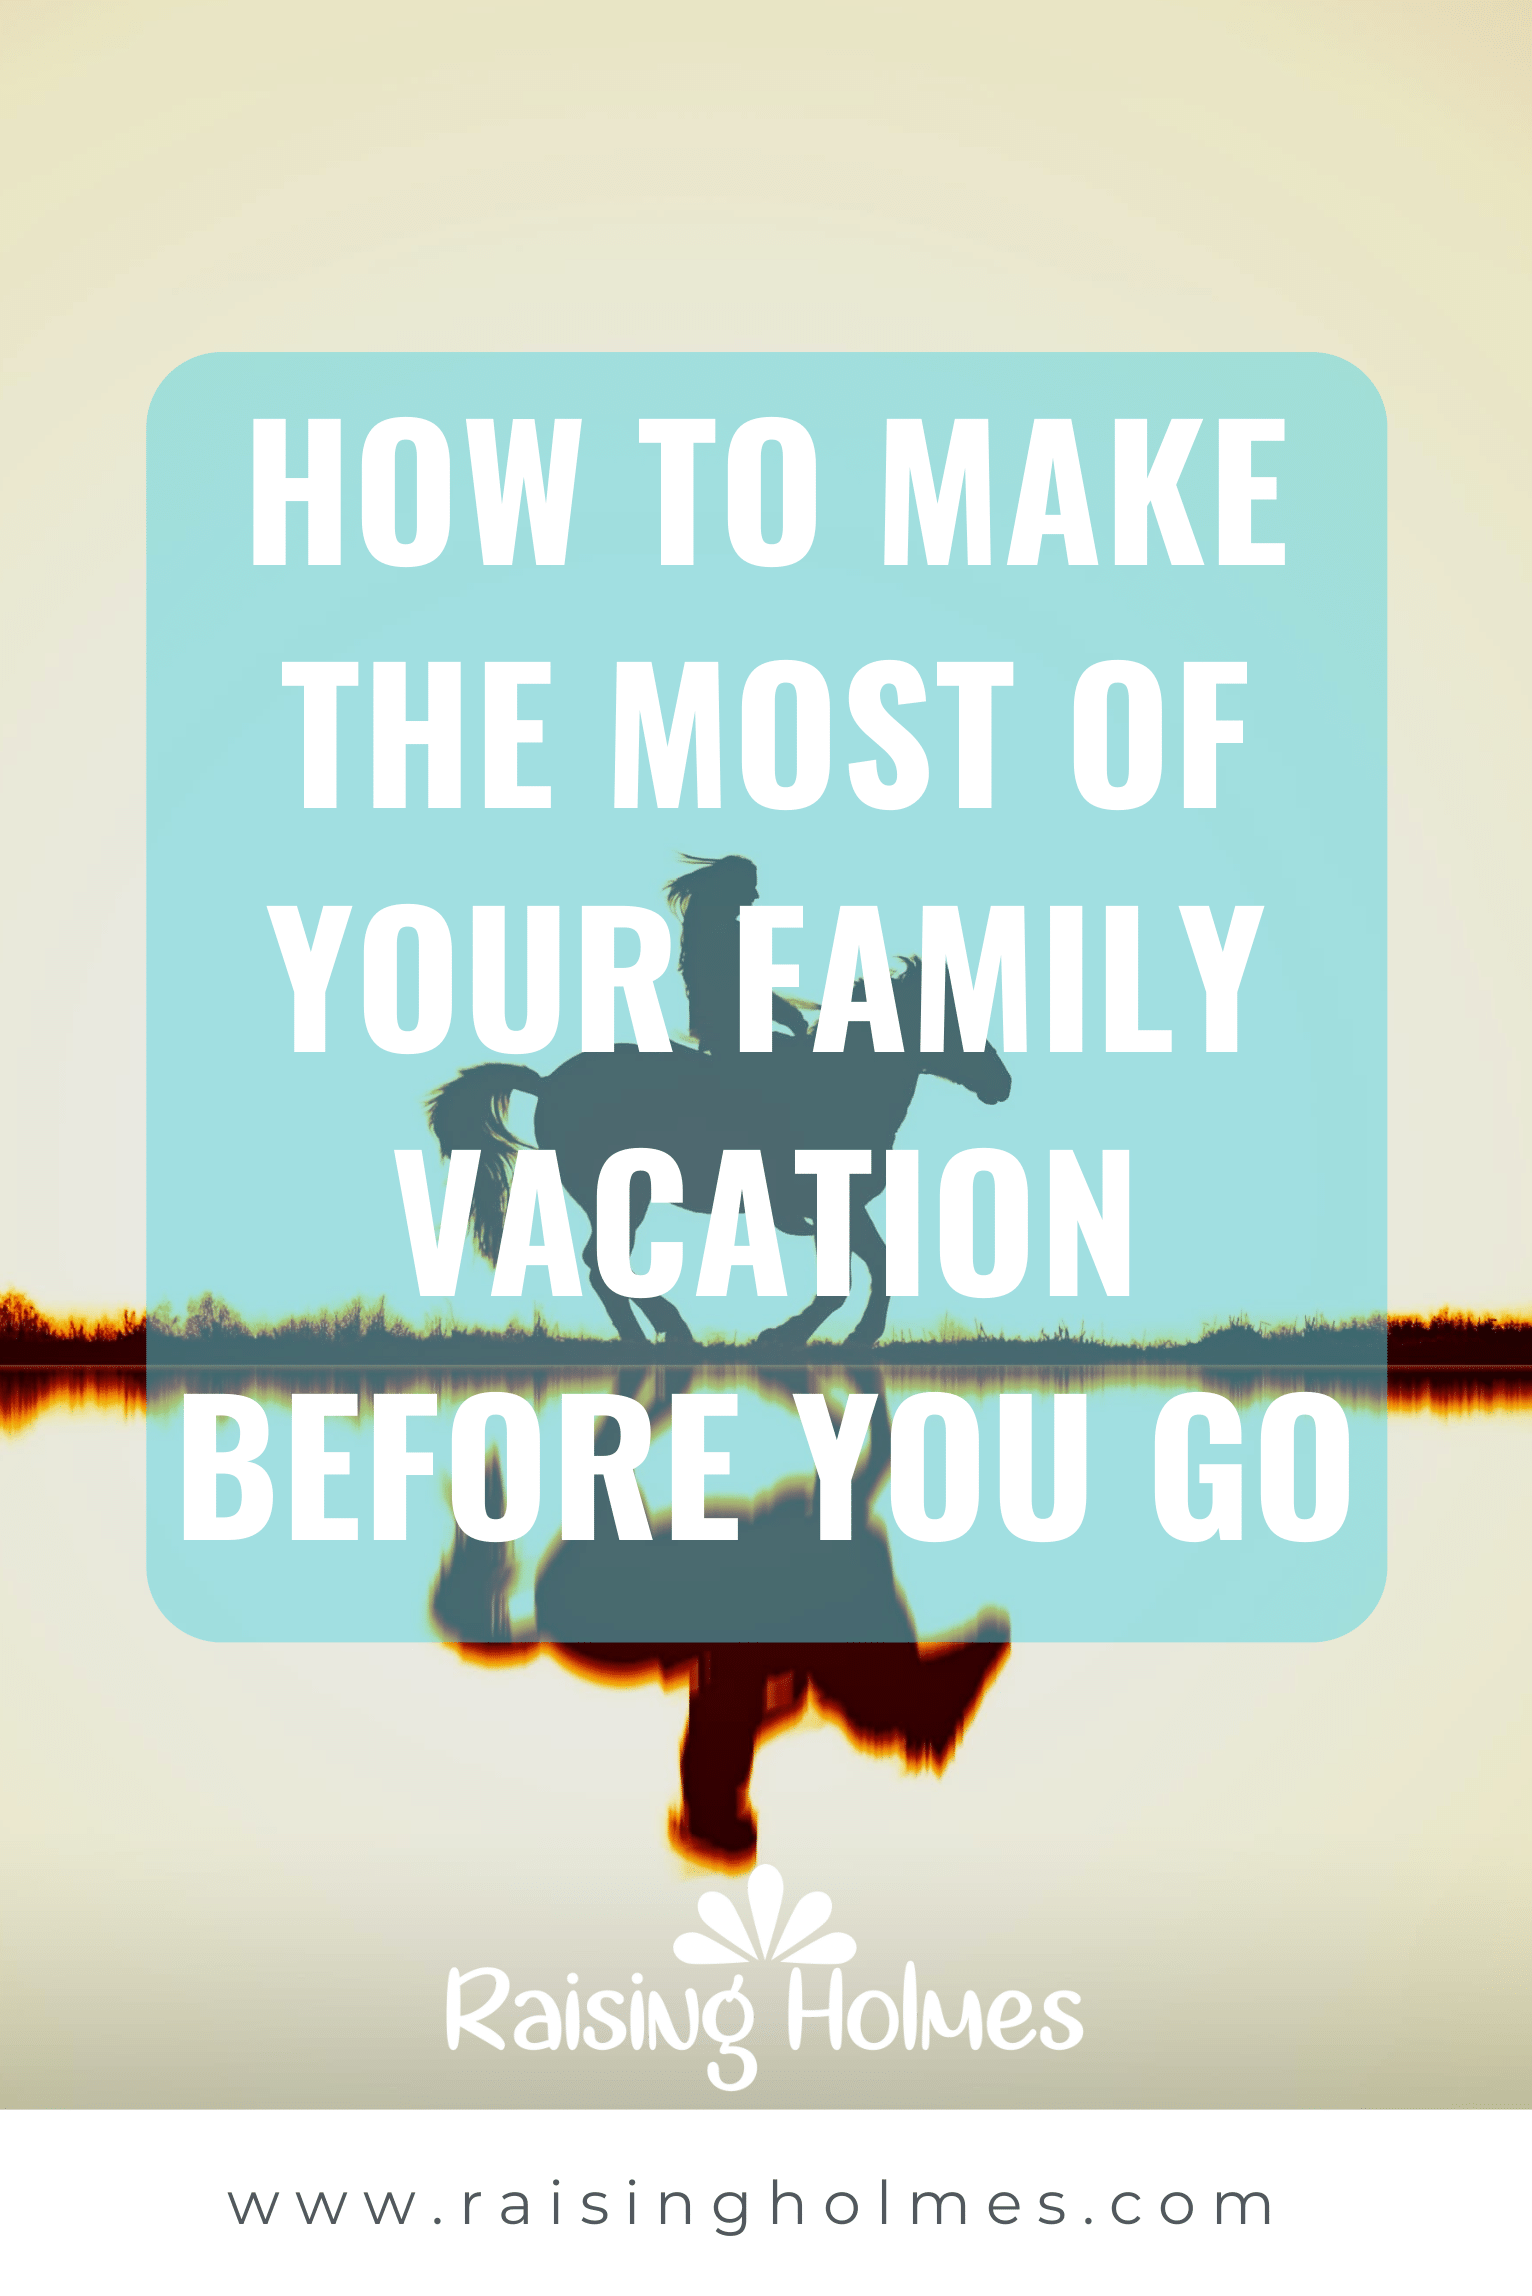 How_To_Make_The_Most_Of_Your_Family_Vacation_Before_You_Go